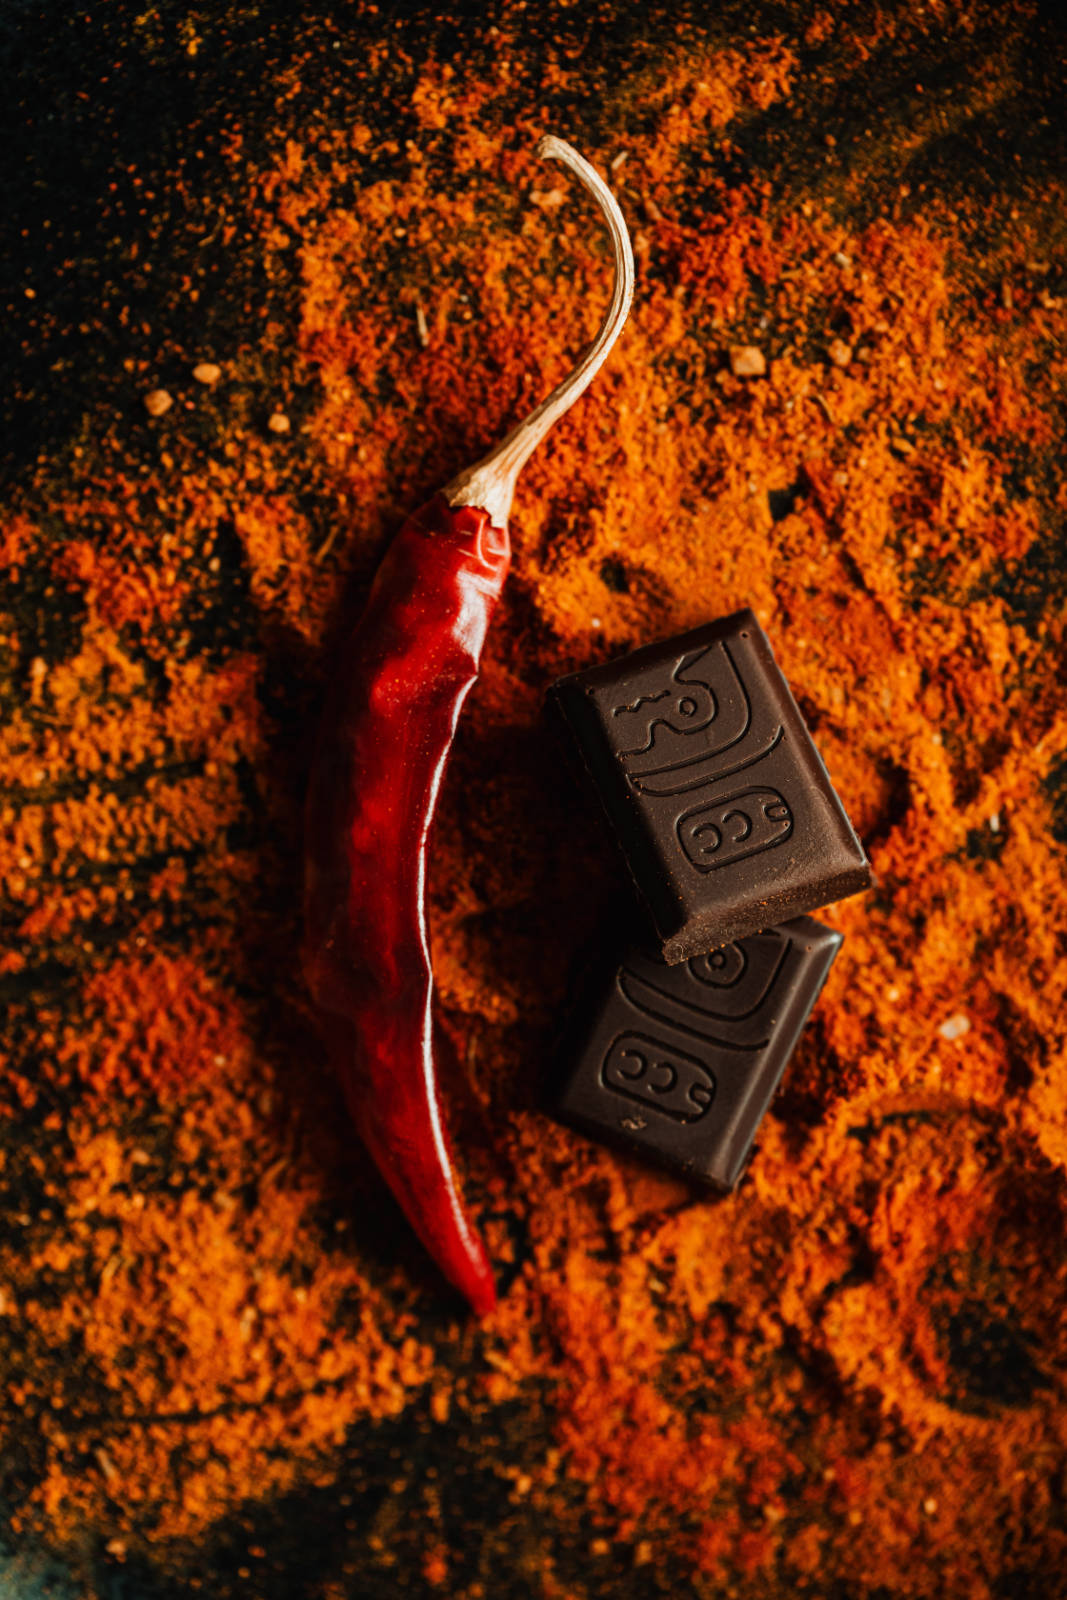 Chile and Chocolate